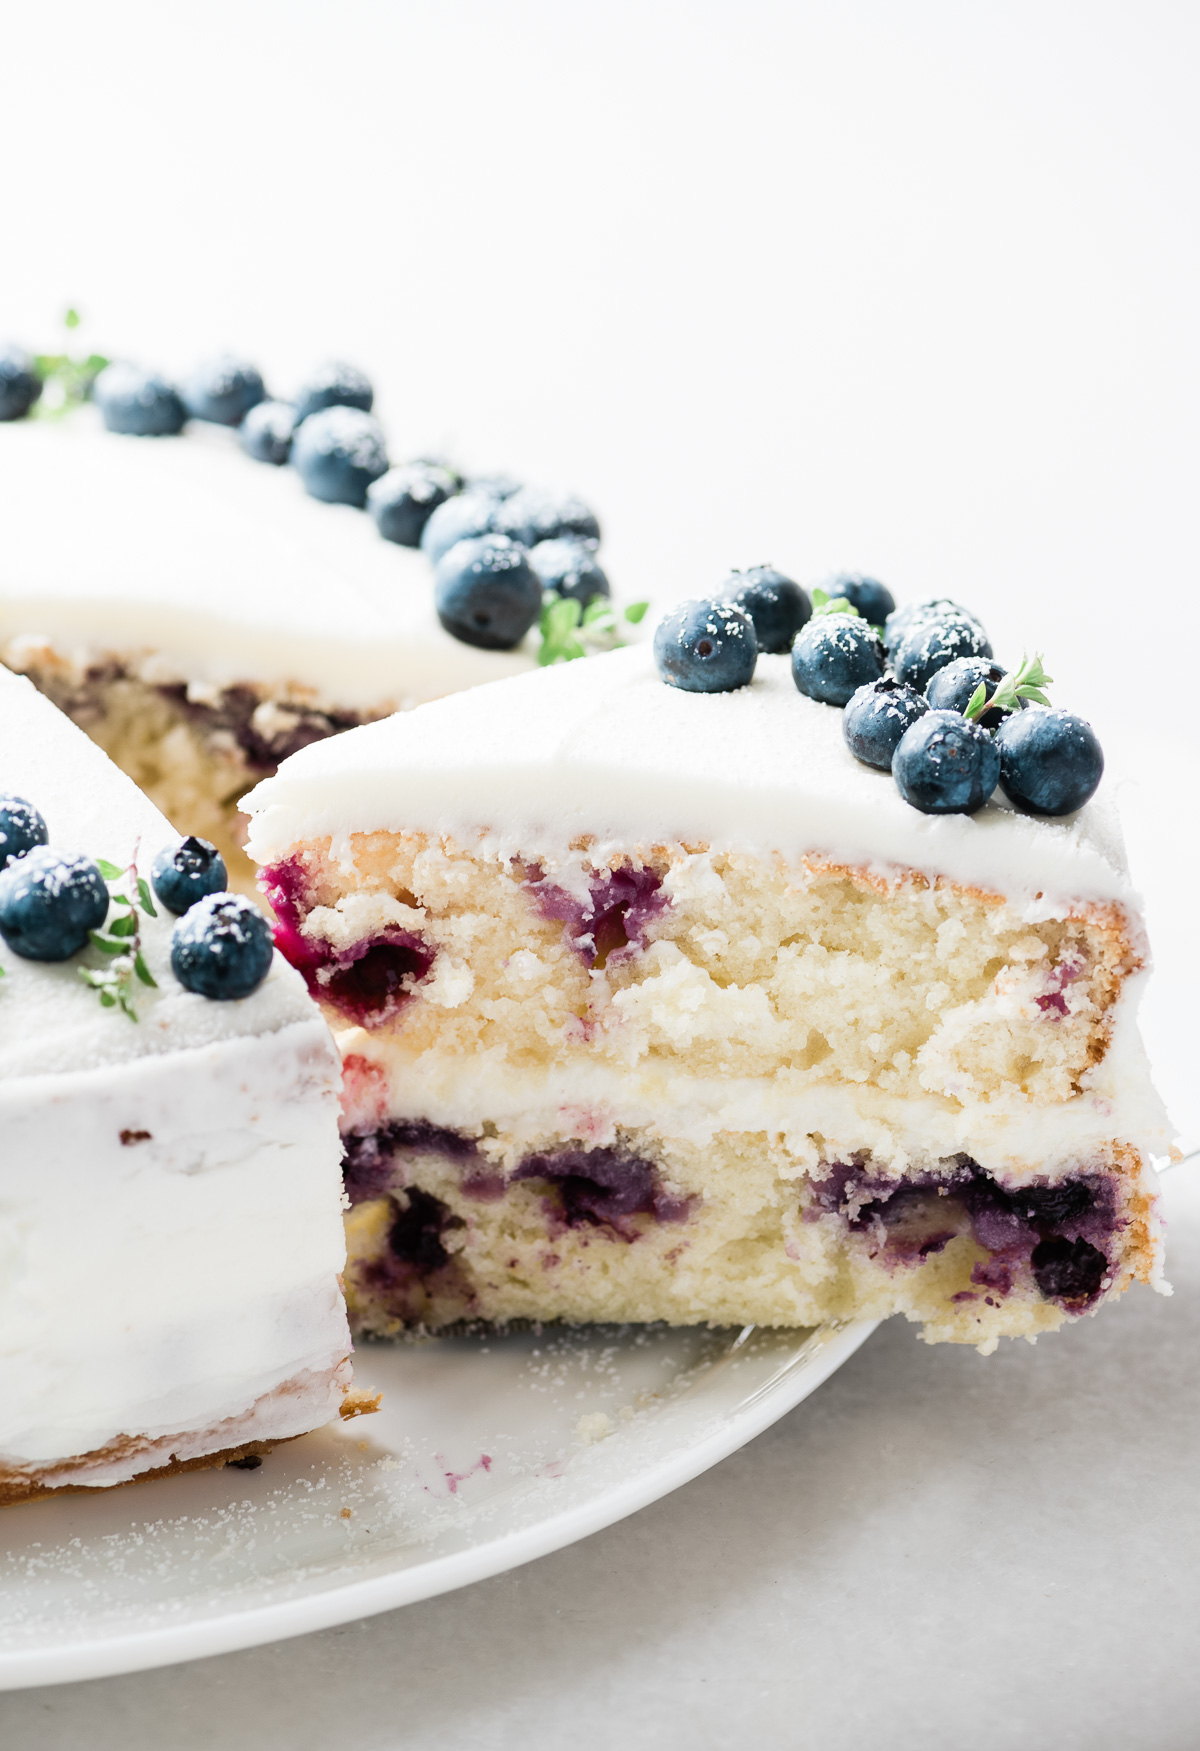 Removing a slice from a Blueberry Lemon Layer Cake